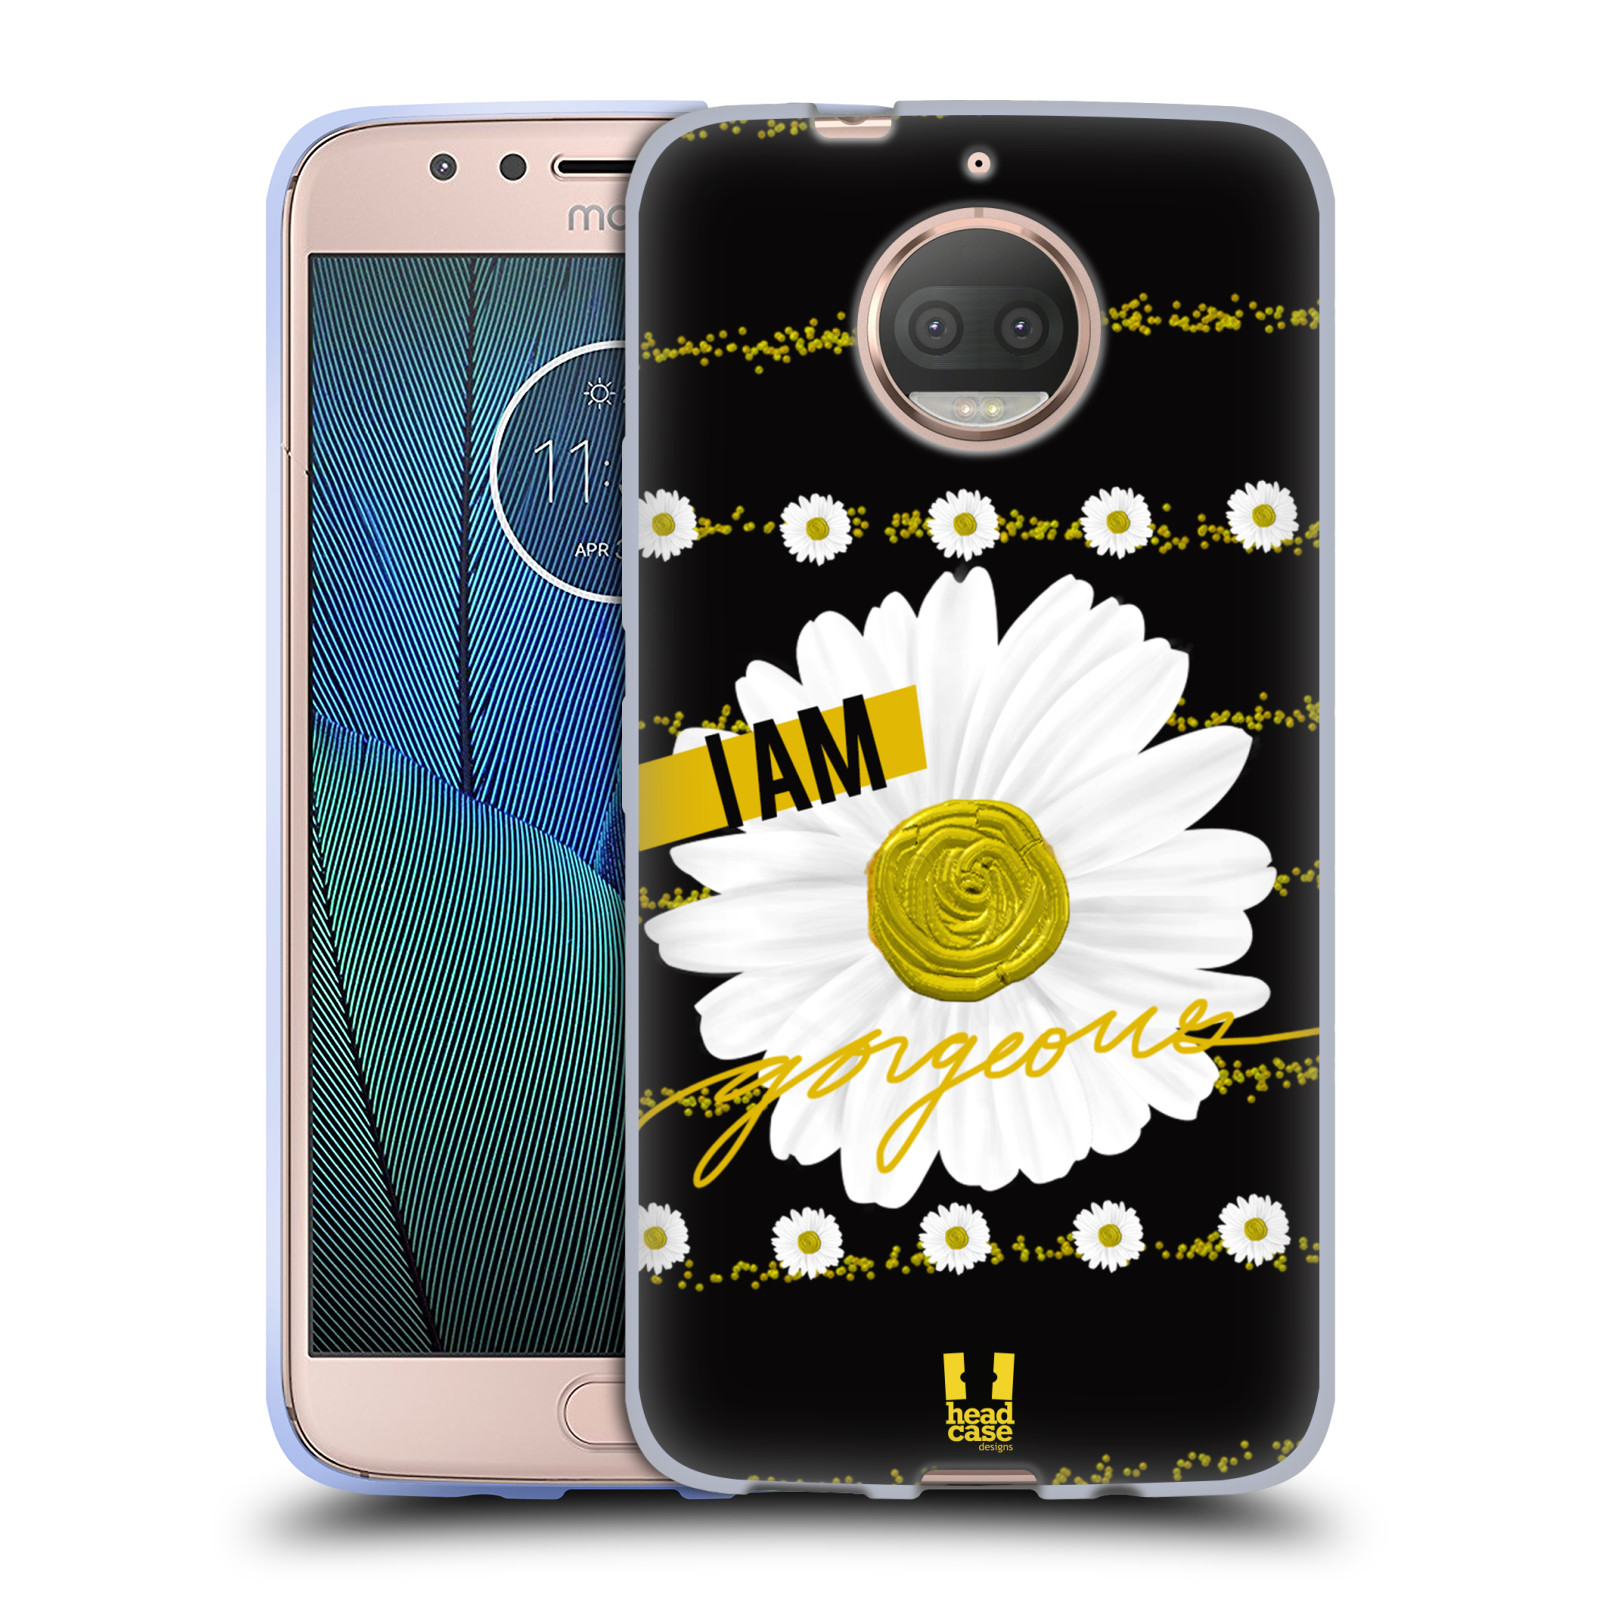 HEAD-CASE-DESIGNS-I-AM-GOLD-ENSEMBLE-SOFT-GEL-CASE-FOR-MOTOROLA-MOTO-G5S-PLUS